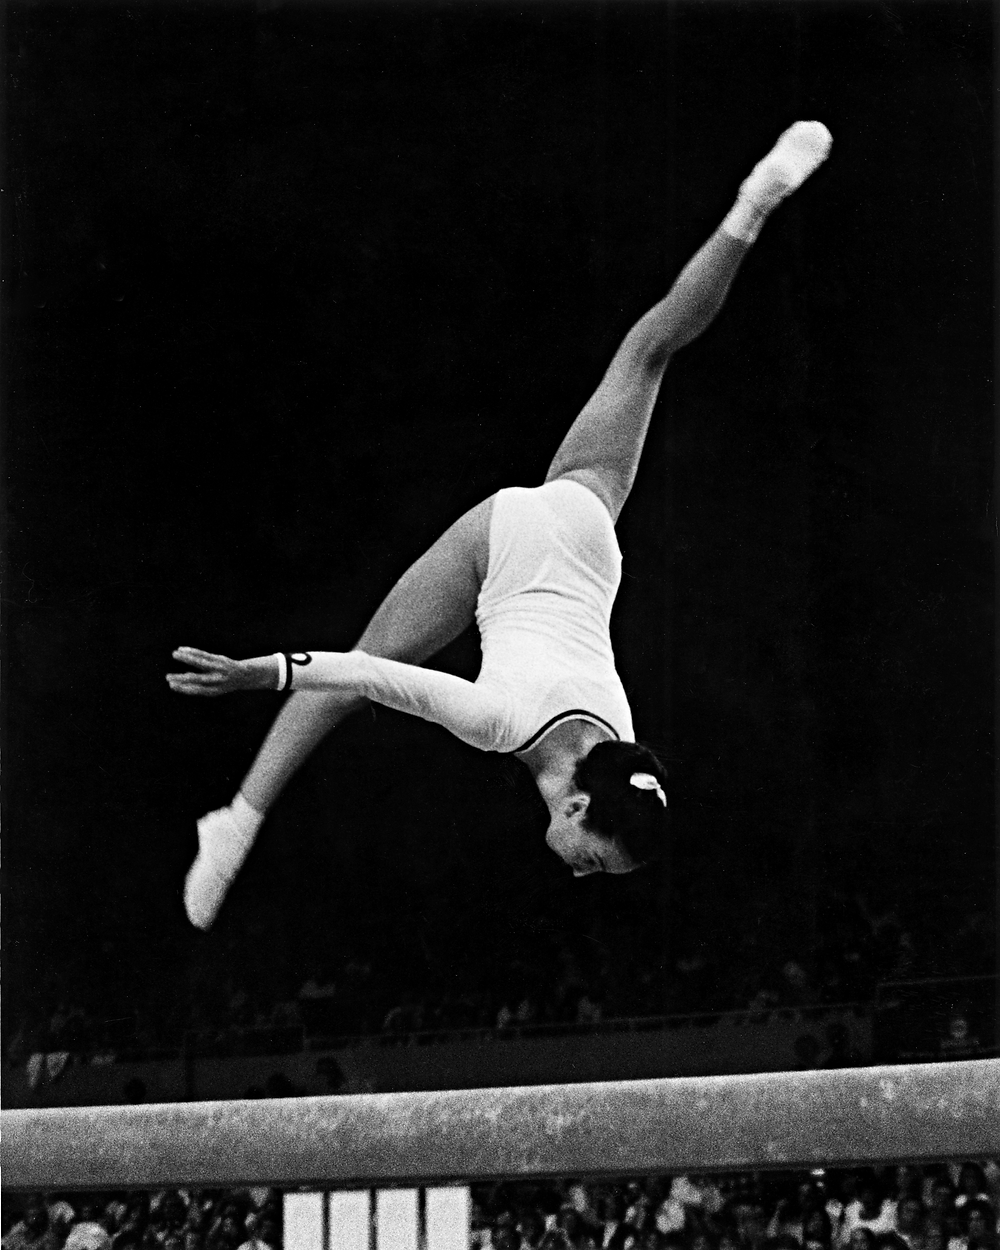 Carrie Englert at the 1976 Olympics in Montreal